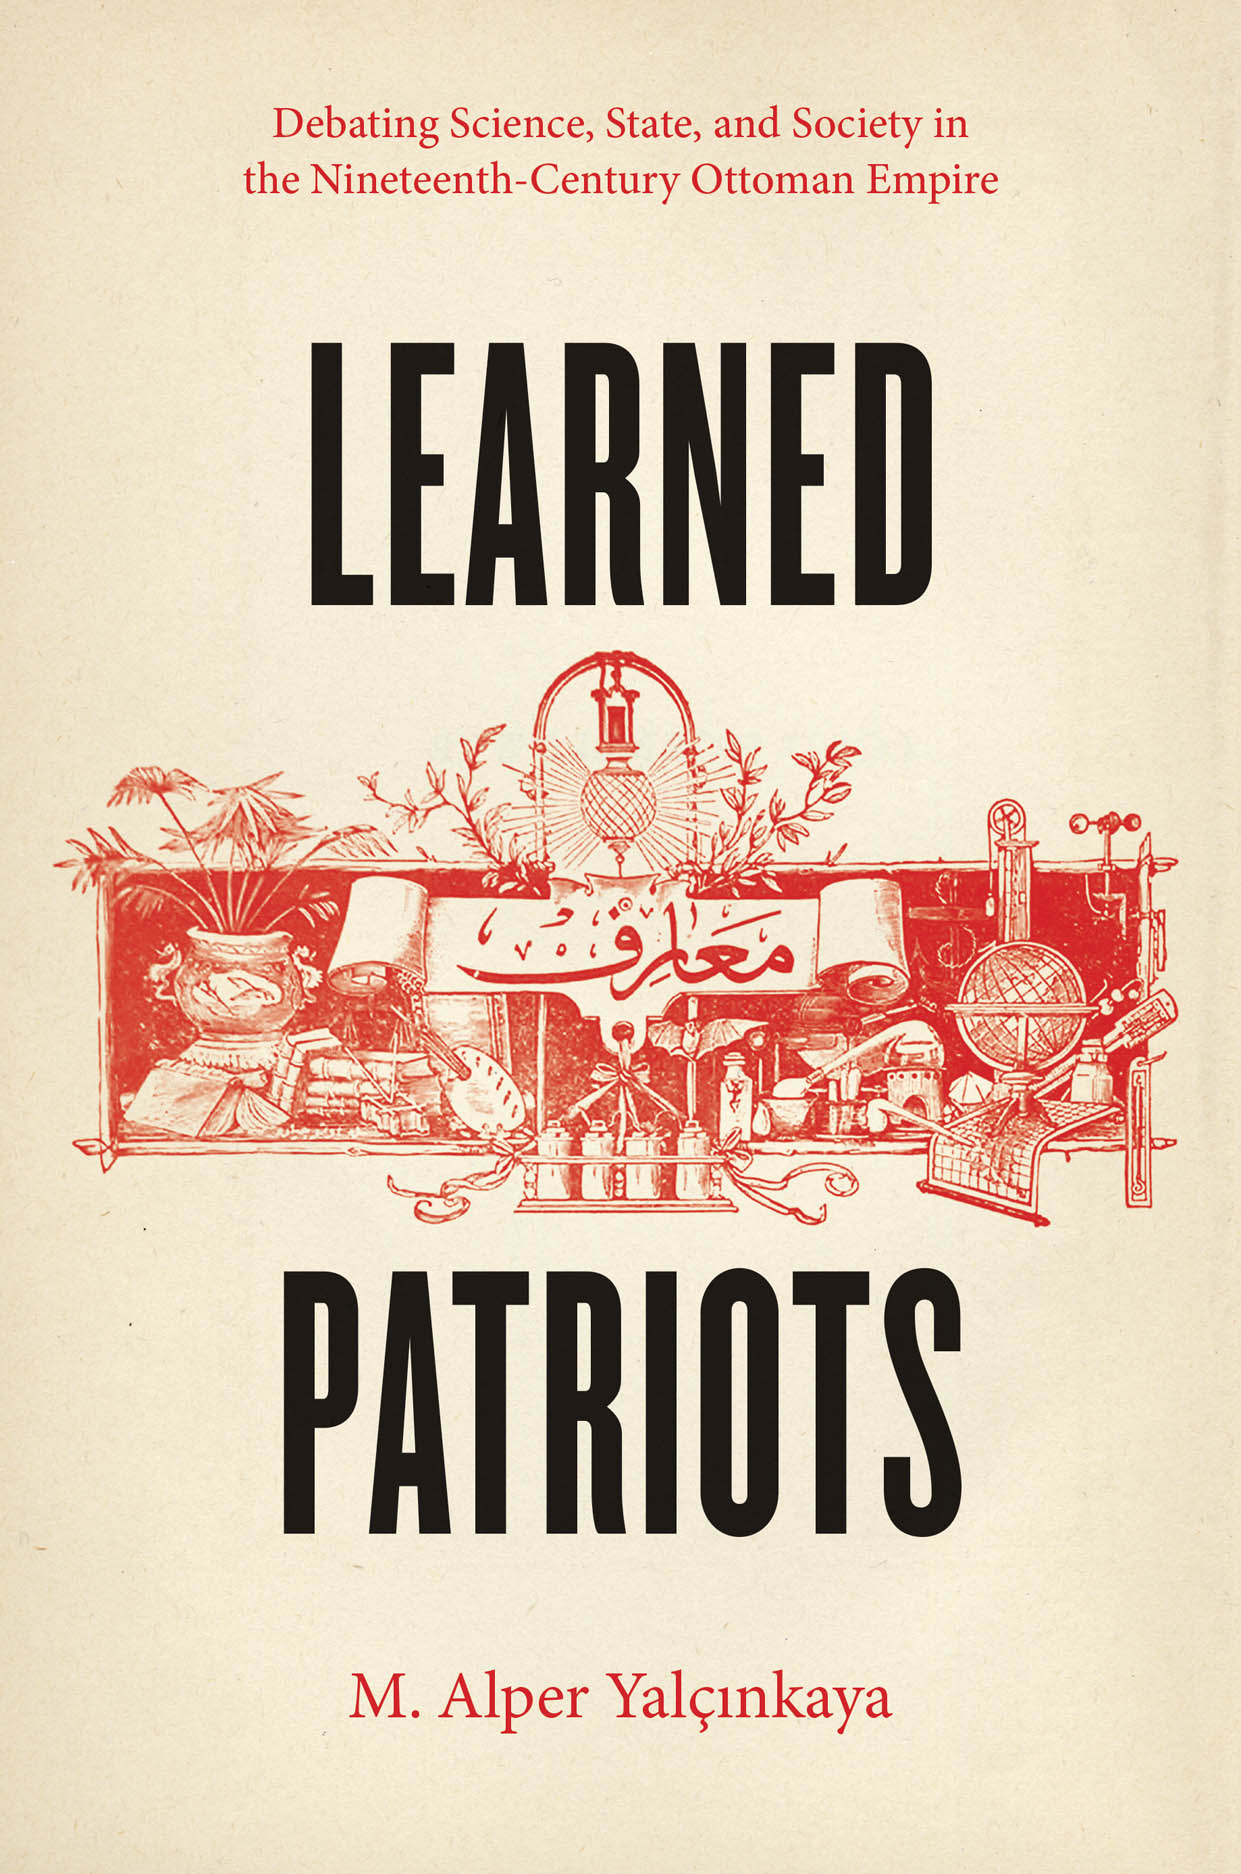 Learned Patriots: Debating Science, State, and Society in the Nineteenth-Century Ottoman Empire